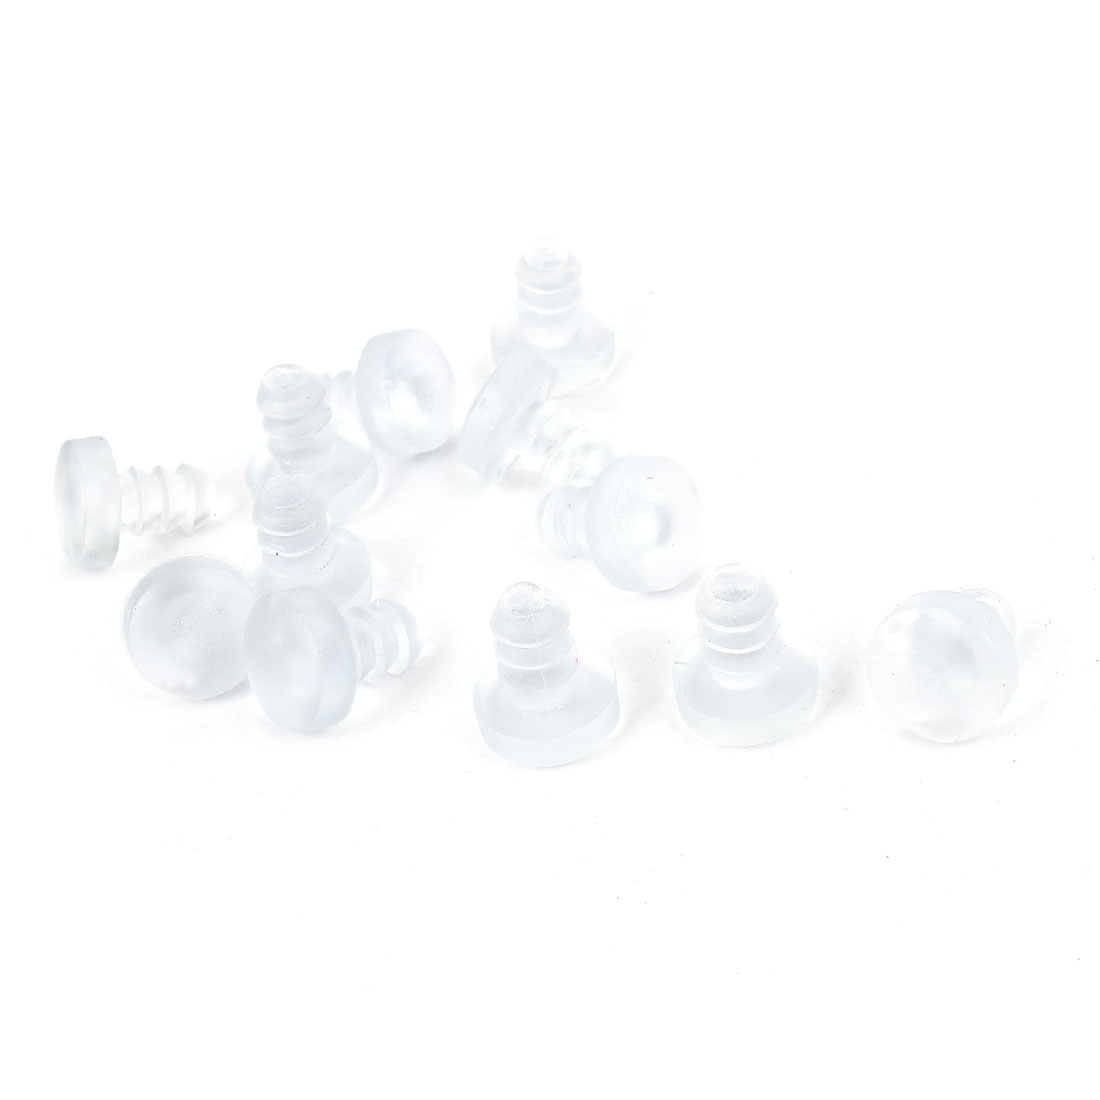 12 Pcs Light Blue Plastic Blanking End Cap Round 5mm Tubing Tube Inserts